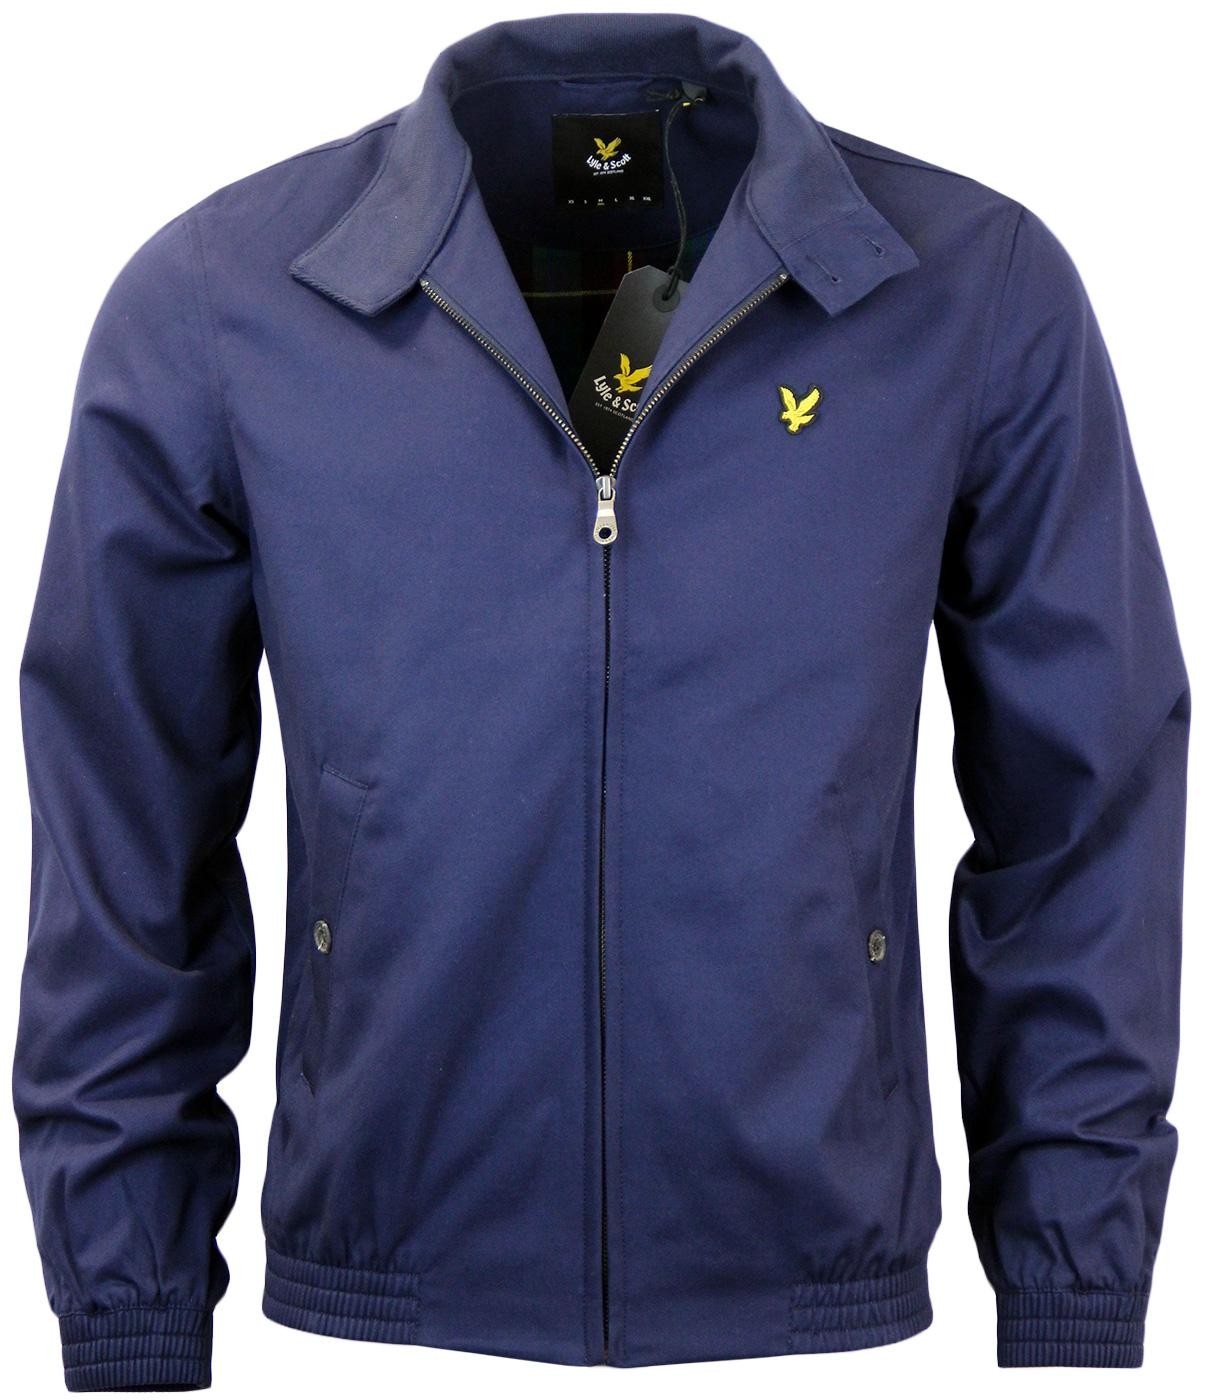 lyle scott retro mod cotton harrington jacket in navy. Black Bedroom Furniture Sets. Home Design Ideas